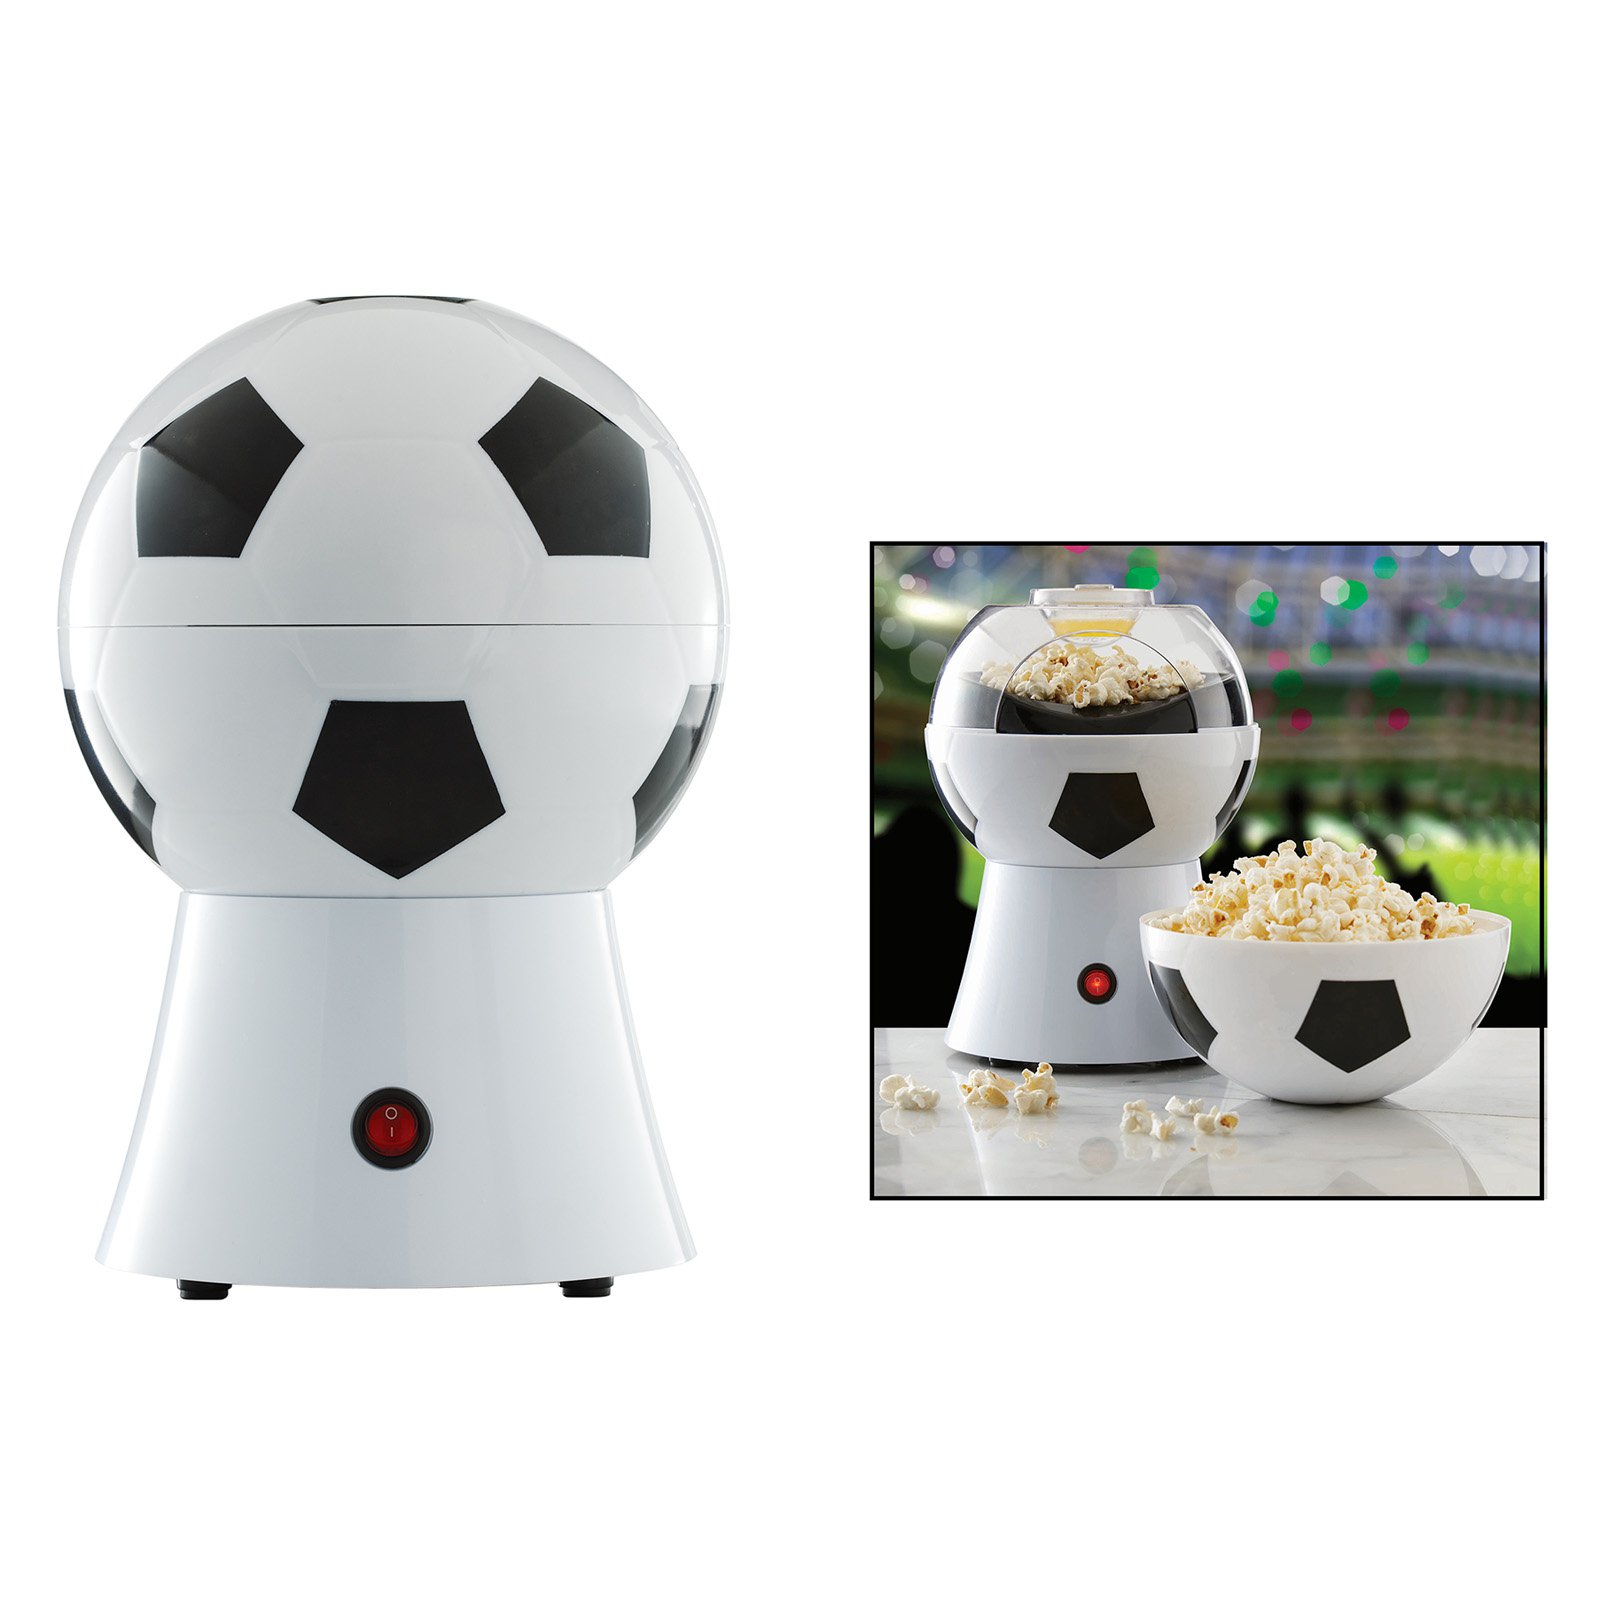 Brentwood Appliances Hot Air Soccer Ball Popcorn Popper by Generic